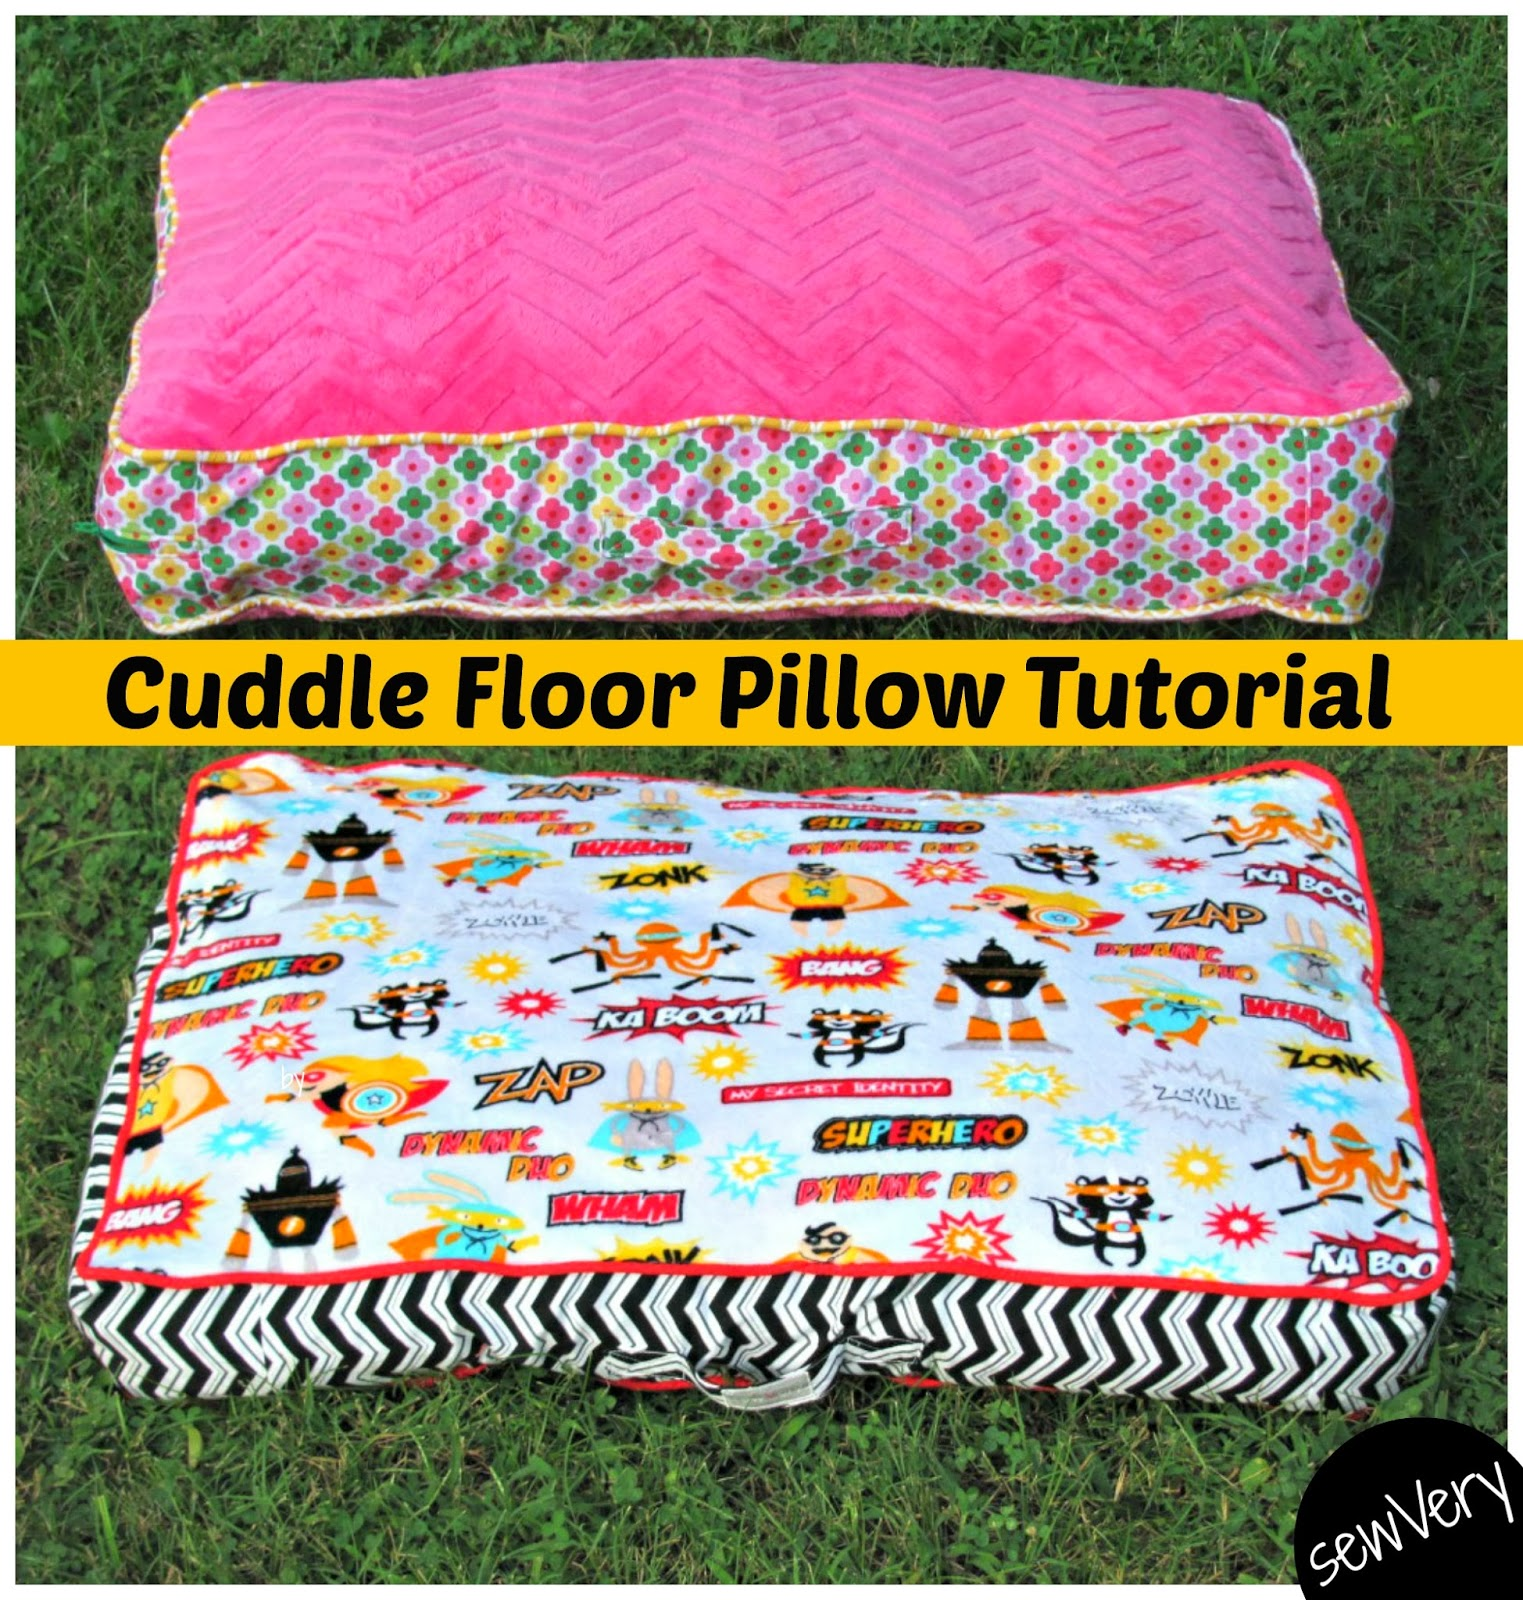 sewVery: Cuddle Floor Pillow Tutorial and Matching Blankets